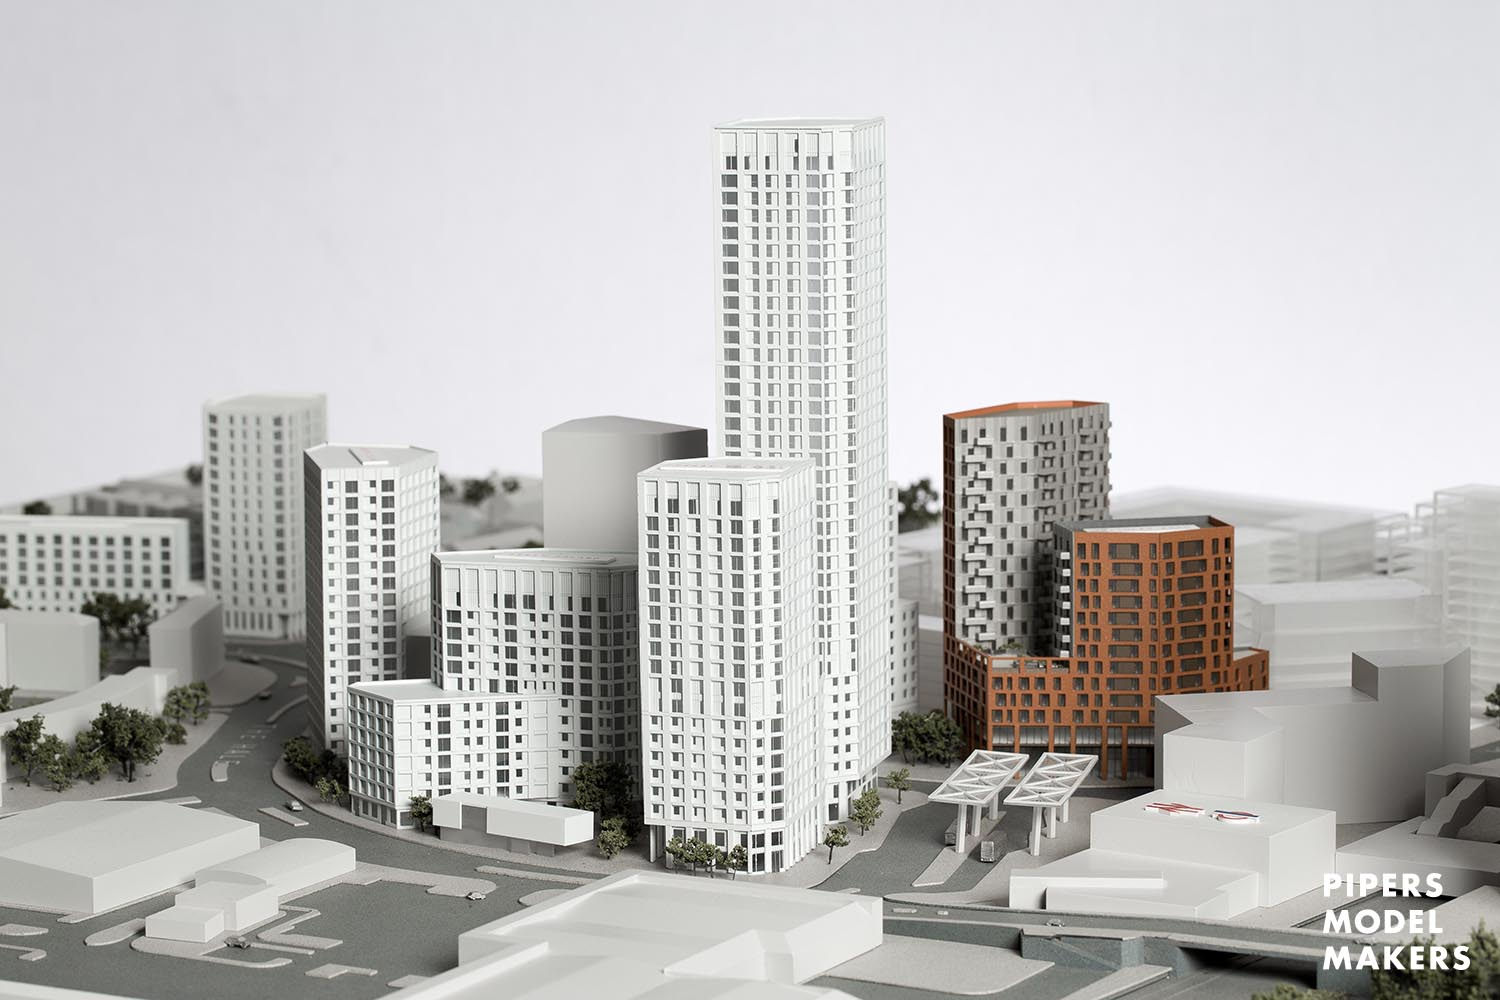 http://Tottenham%20Hale%20Argent%20Related%20Architectural%20Model